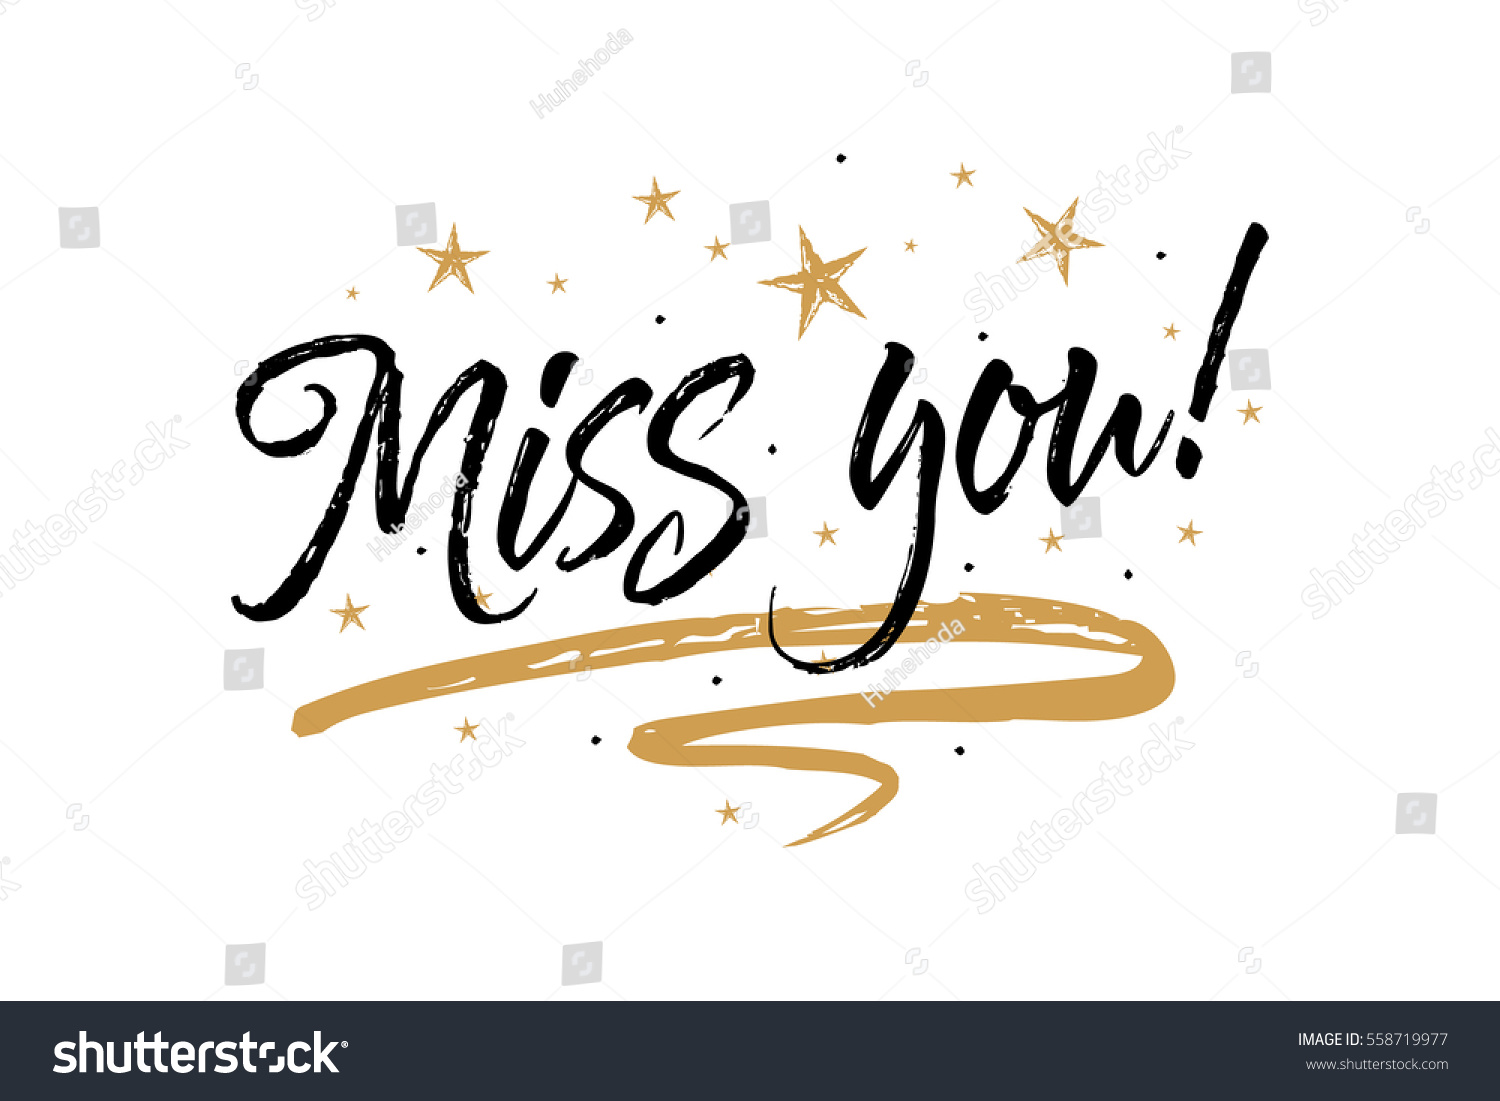 Miss you beautiful greeting card scratched stock vector 558719977 miss you beautiful greeting card scratched calligraphy black text word gold starshand drawn kristyandbryce Image collections